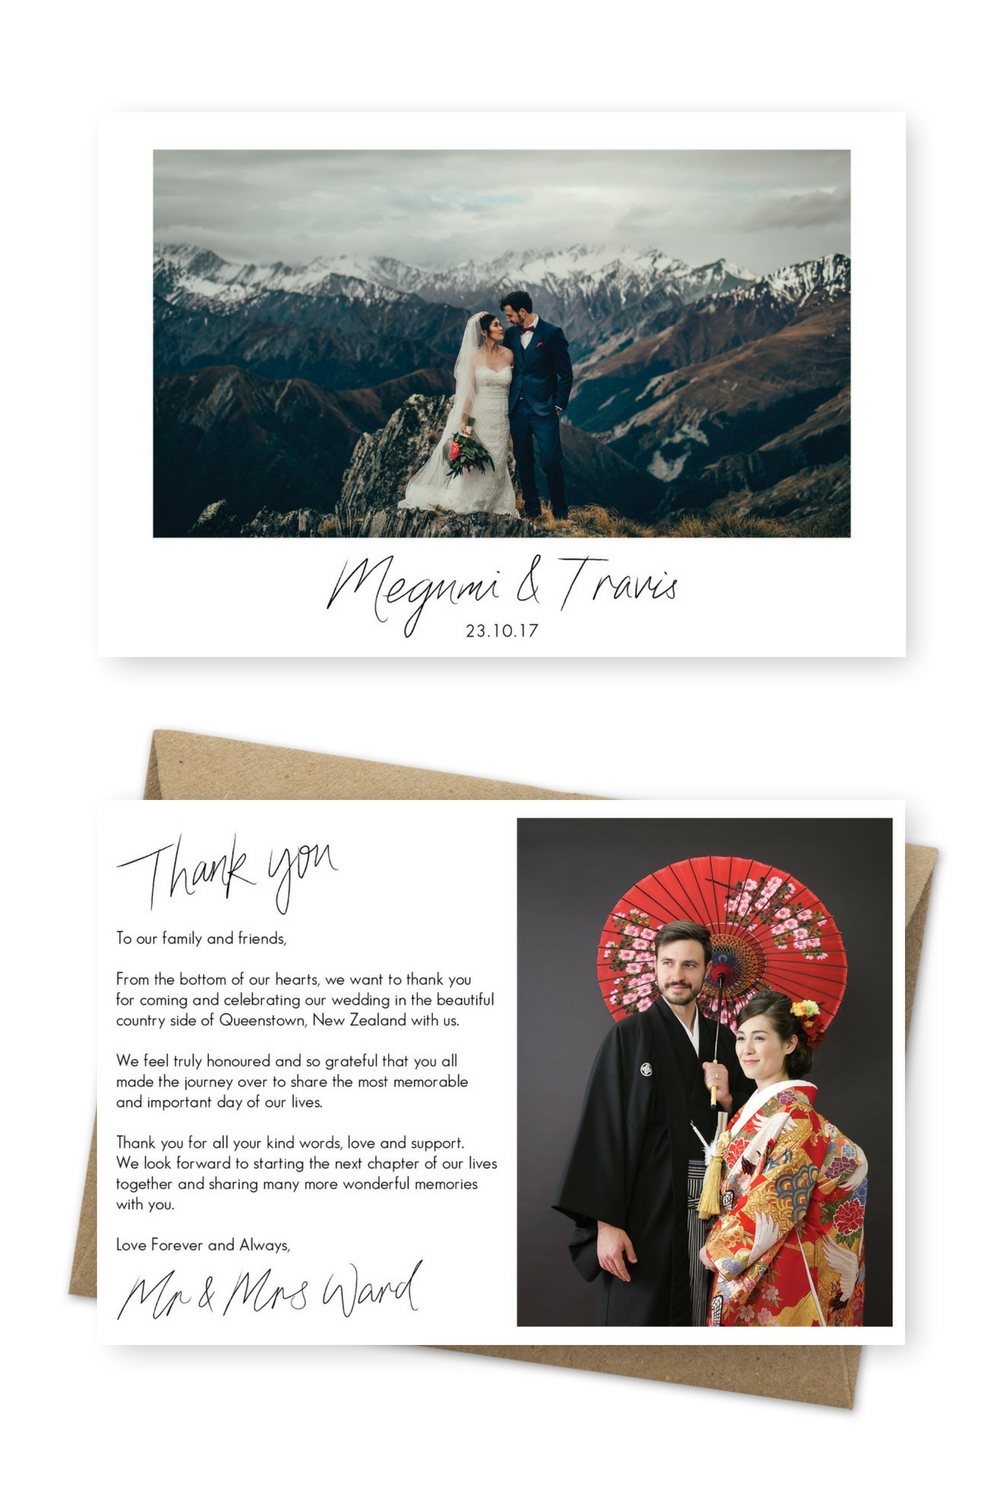 Wedding Thank You Cards With Photo Thank You Card Template Etsy Wedding Thank You Cards Photo Thank You Cards Thank You Cards